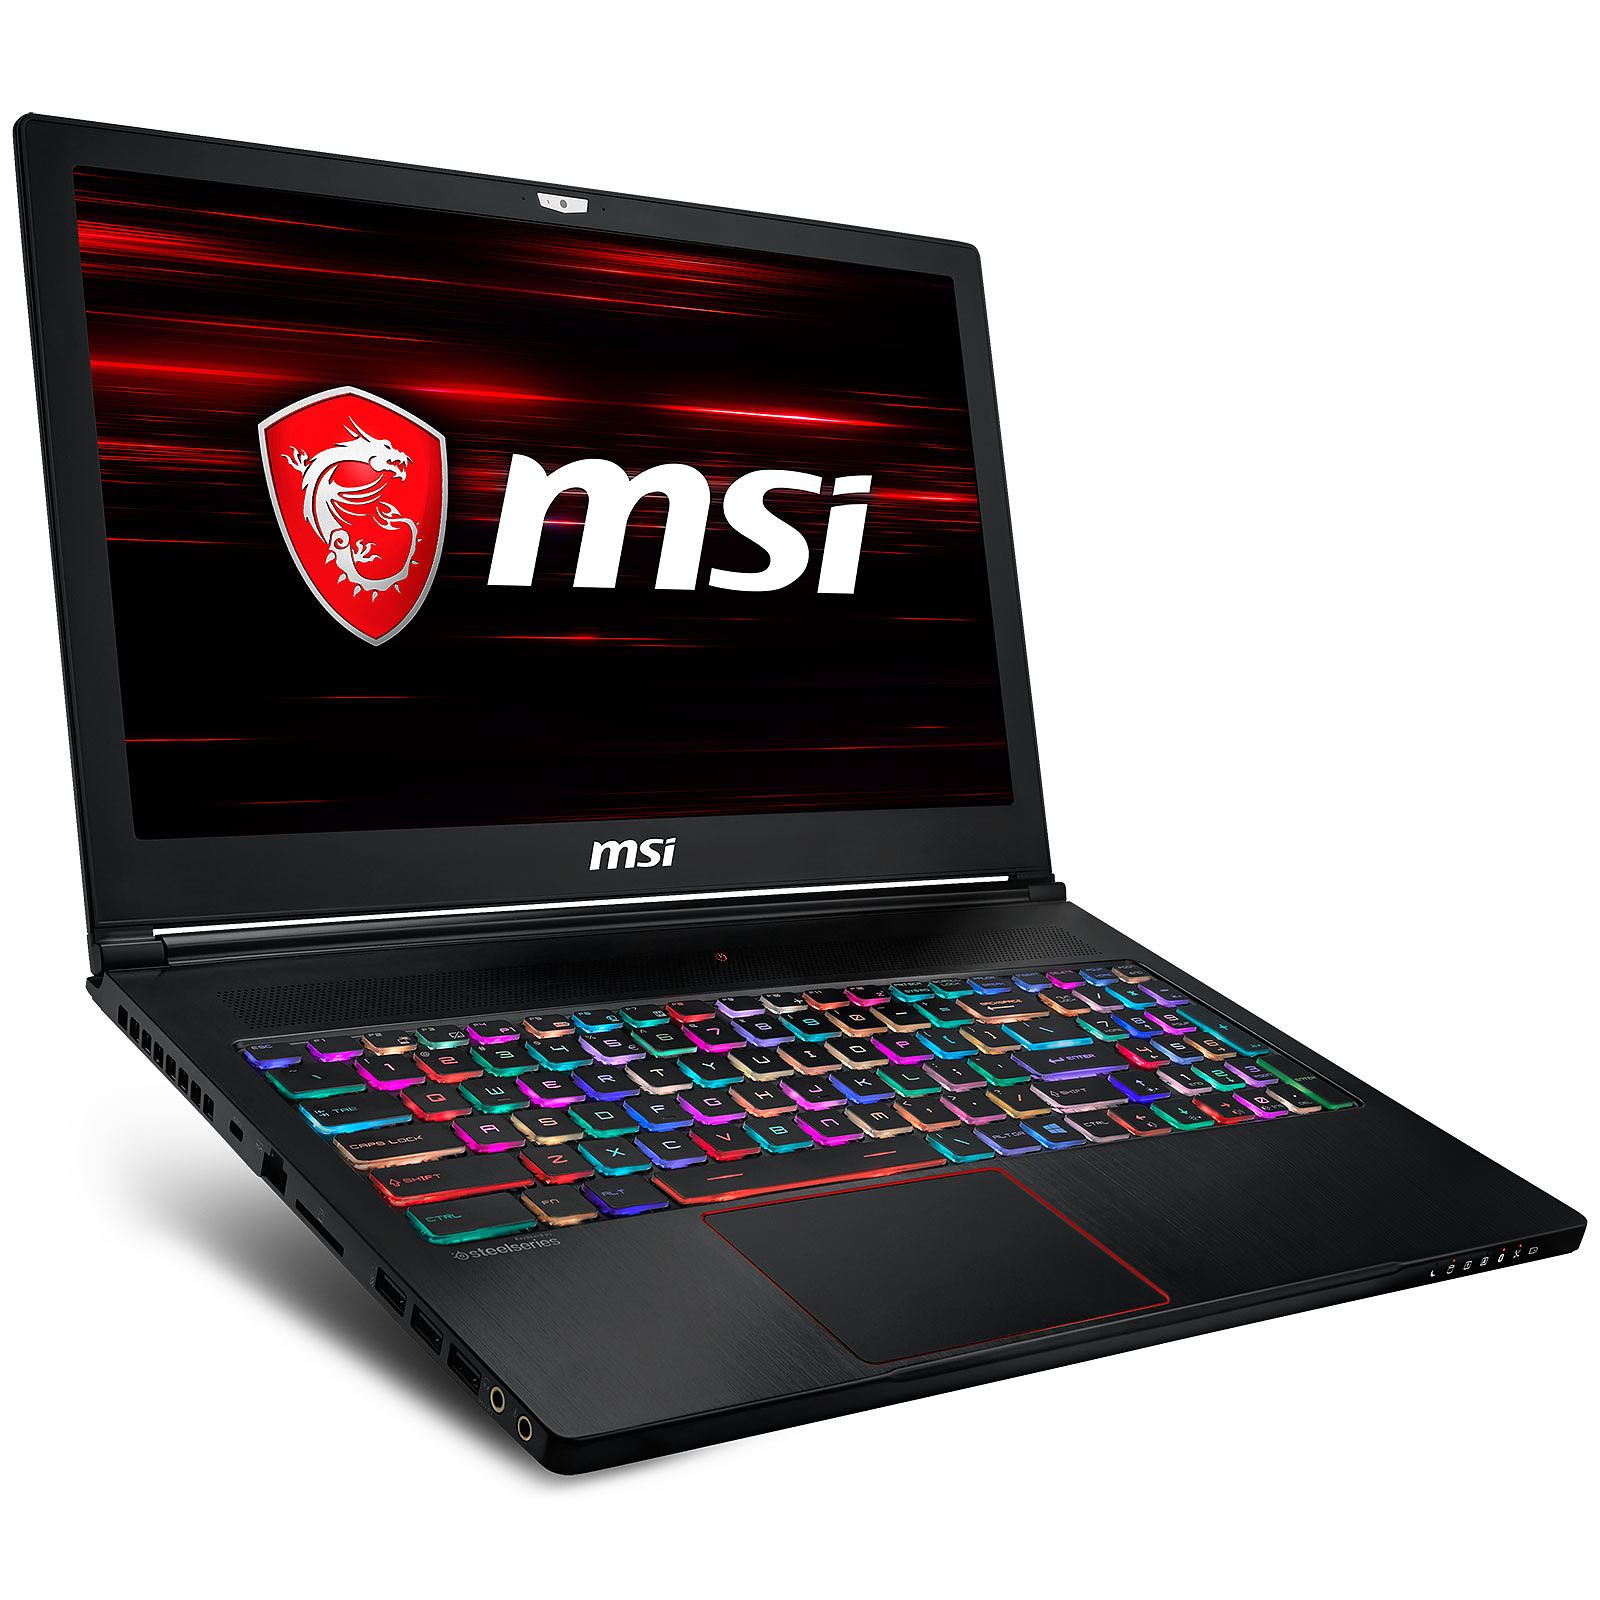 MSI GS63 8RE-056FR Stealth